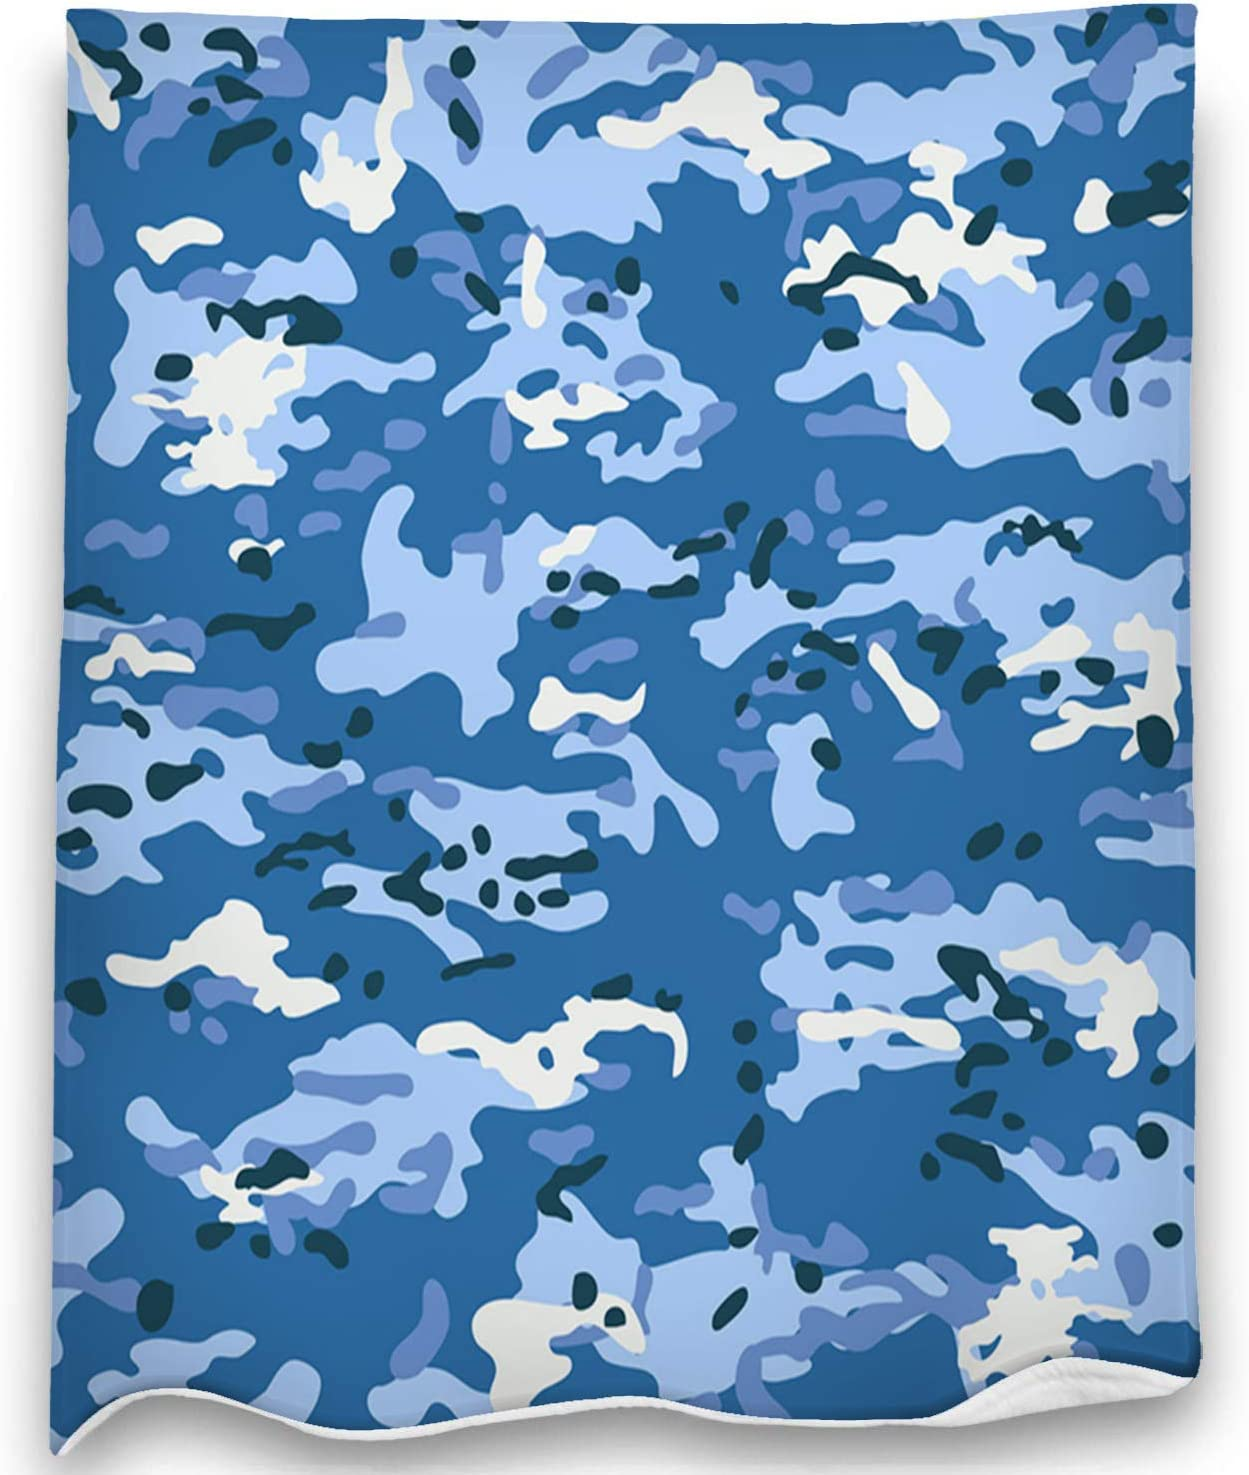 """Kkyoxdiy Ultra-Soft Micro Fleece Blanket Multicam Camouflage Seamless Patterns Soft and Warm Throw Blanket for Bed Or Couch 80""""x60"""""""